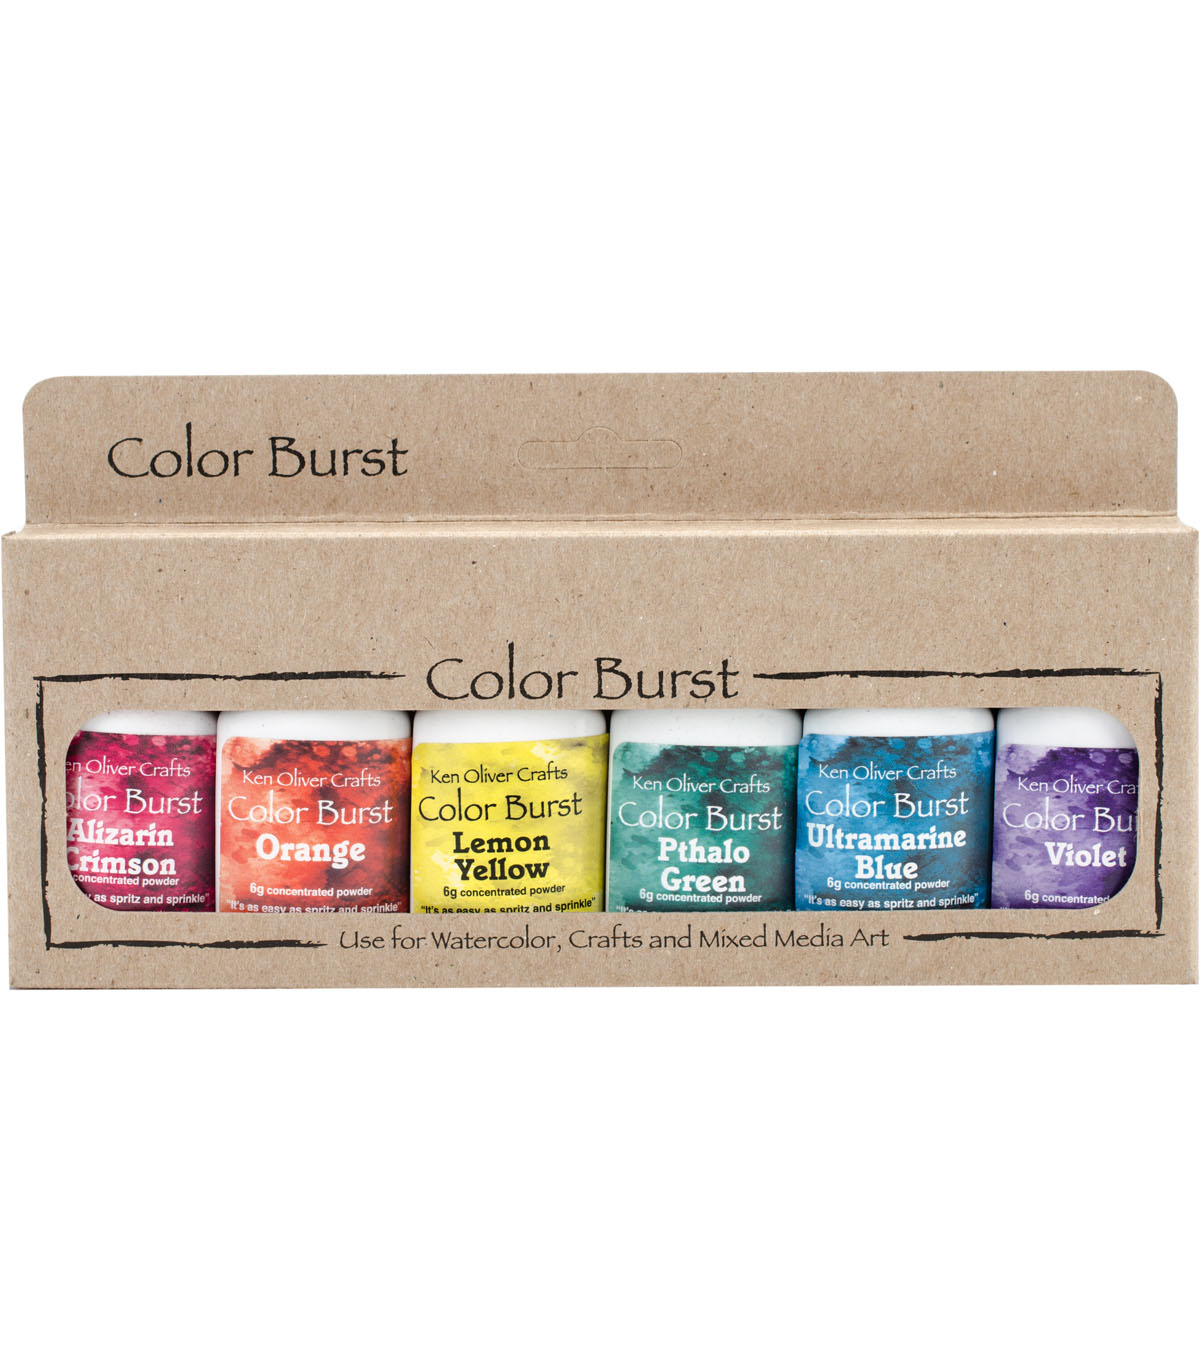 Ken Oliver Crafts Color Burst 6 pk 0.21 oz. Watercolor Powder-Brights